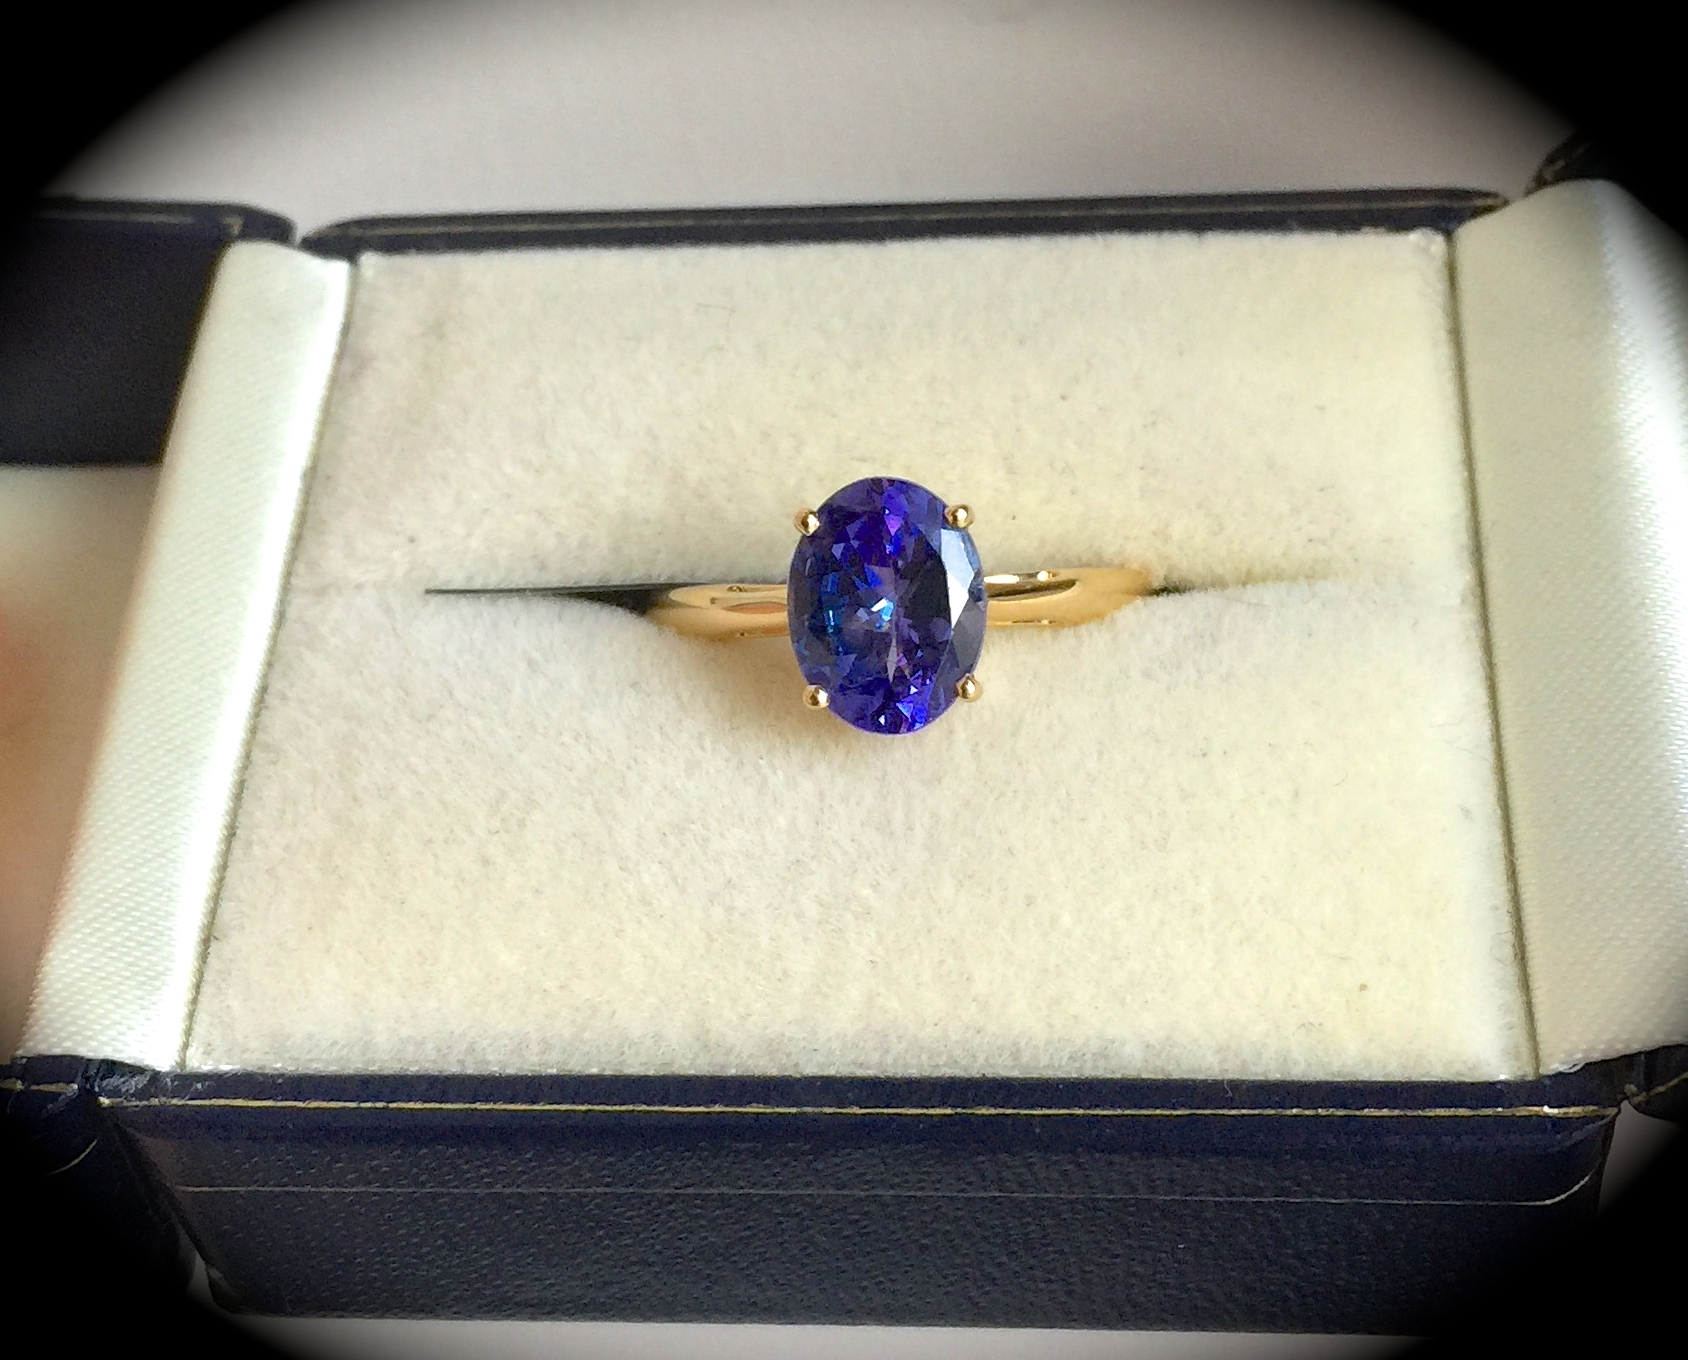 shipping shape cts size inclushion investment quality il no grade fullxfull listing natural oval tanzanite aaa